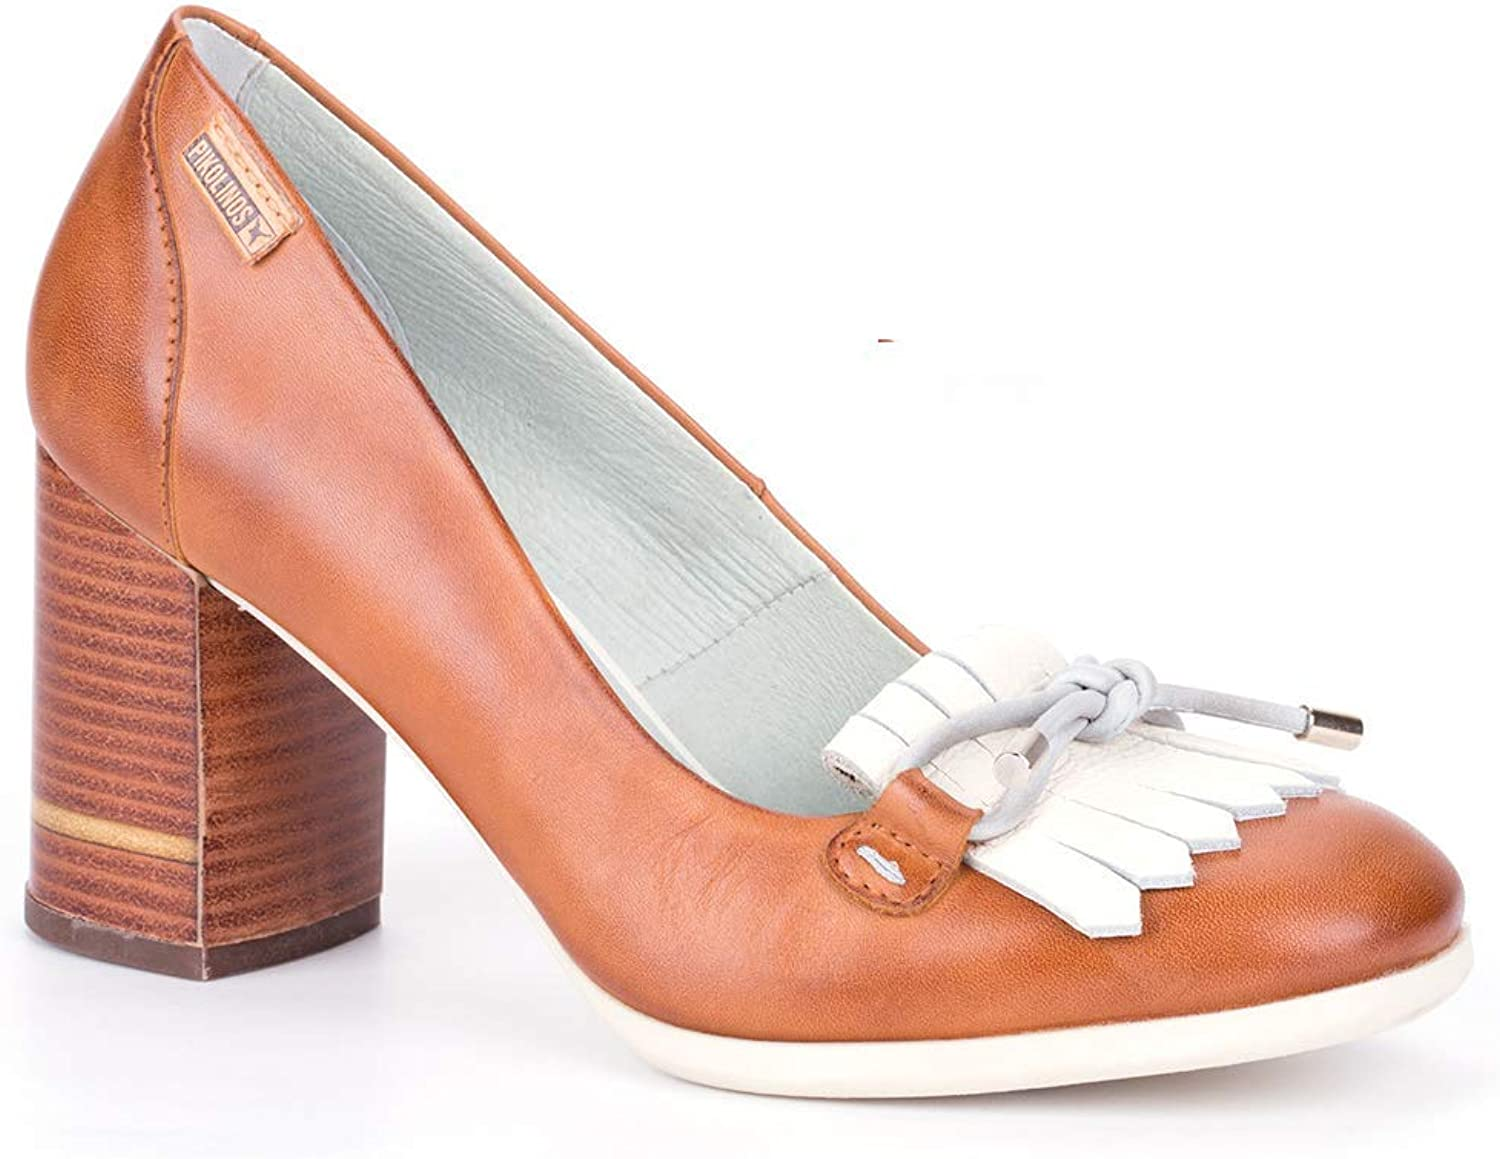 Pikolinos Women shoes w2n-5798 Pumps Brandy NATA Leather Women's shoes high Heel 8cm